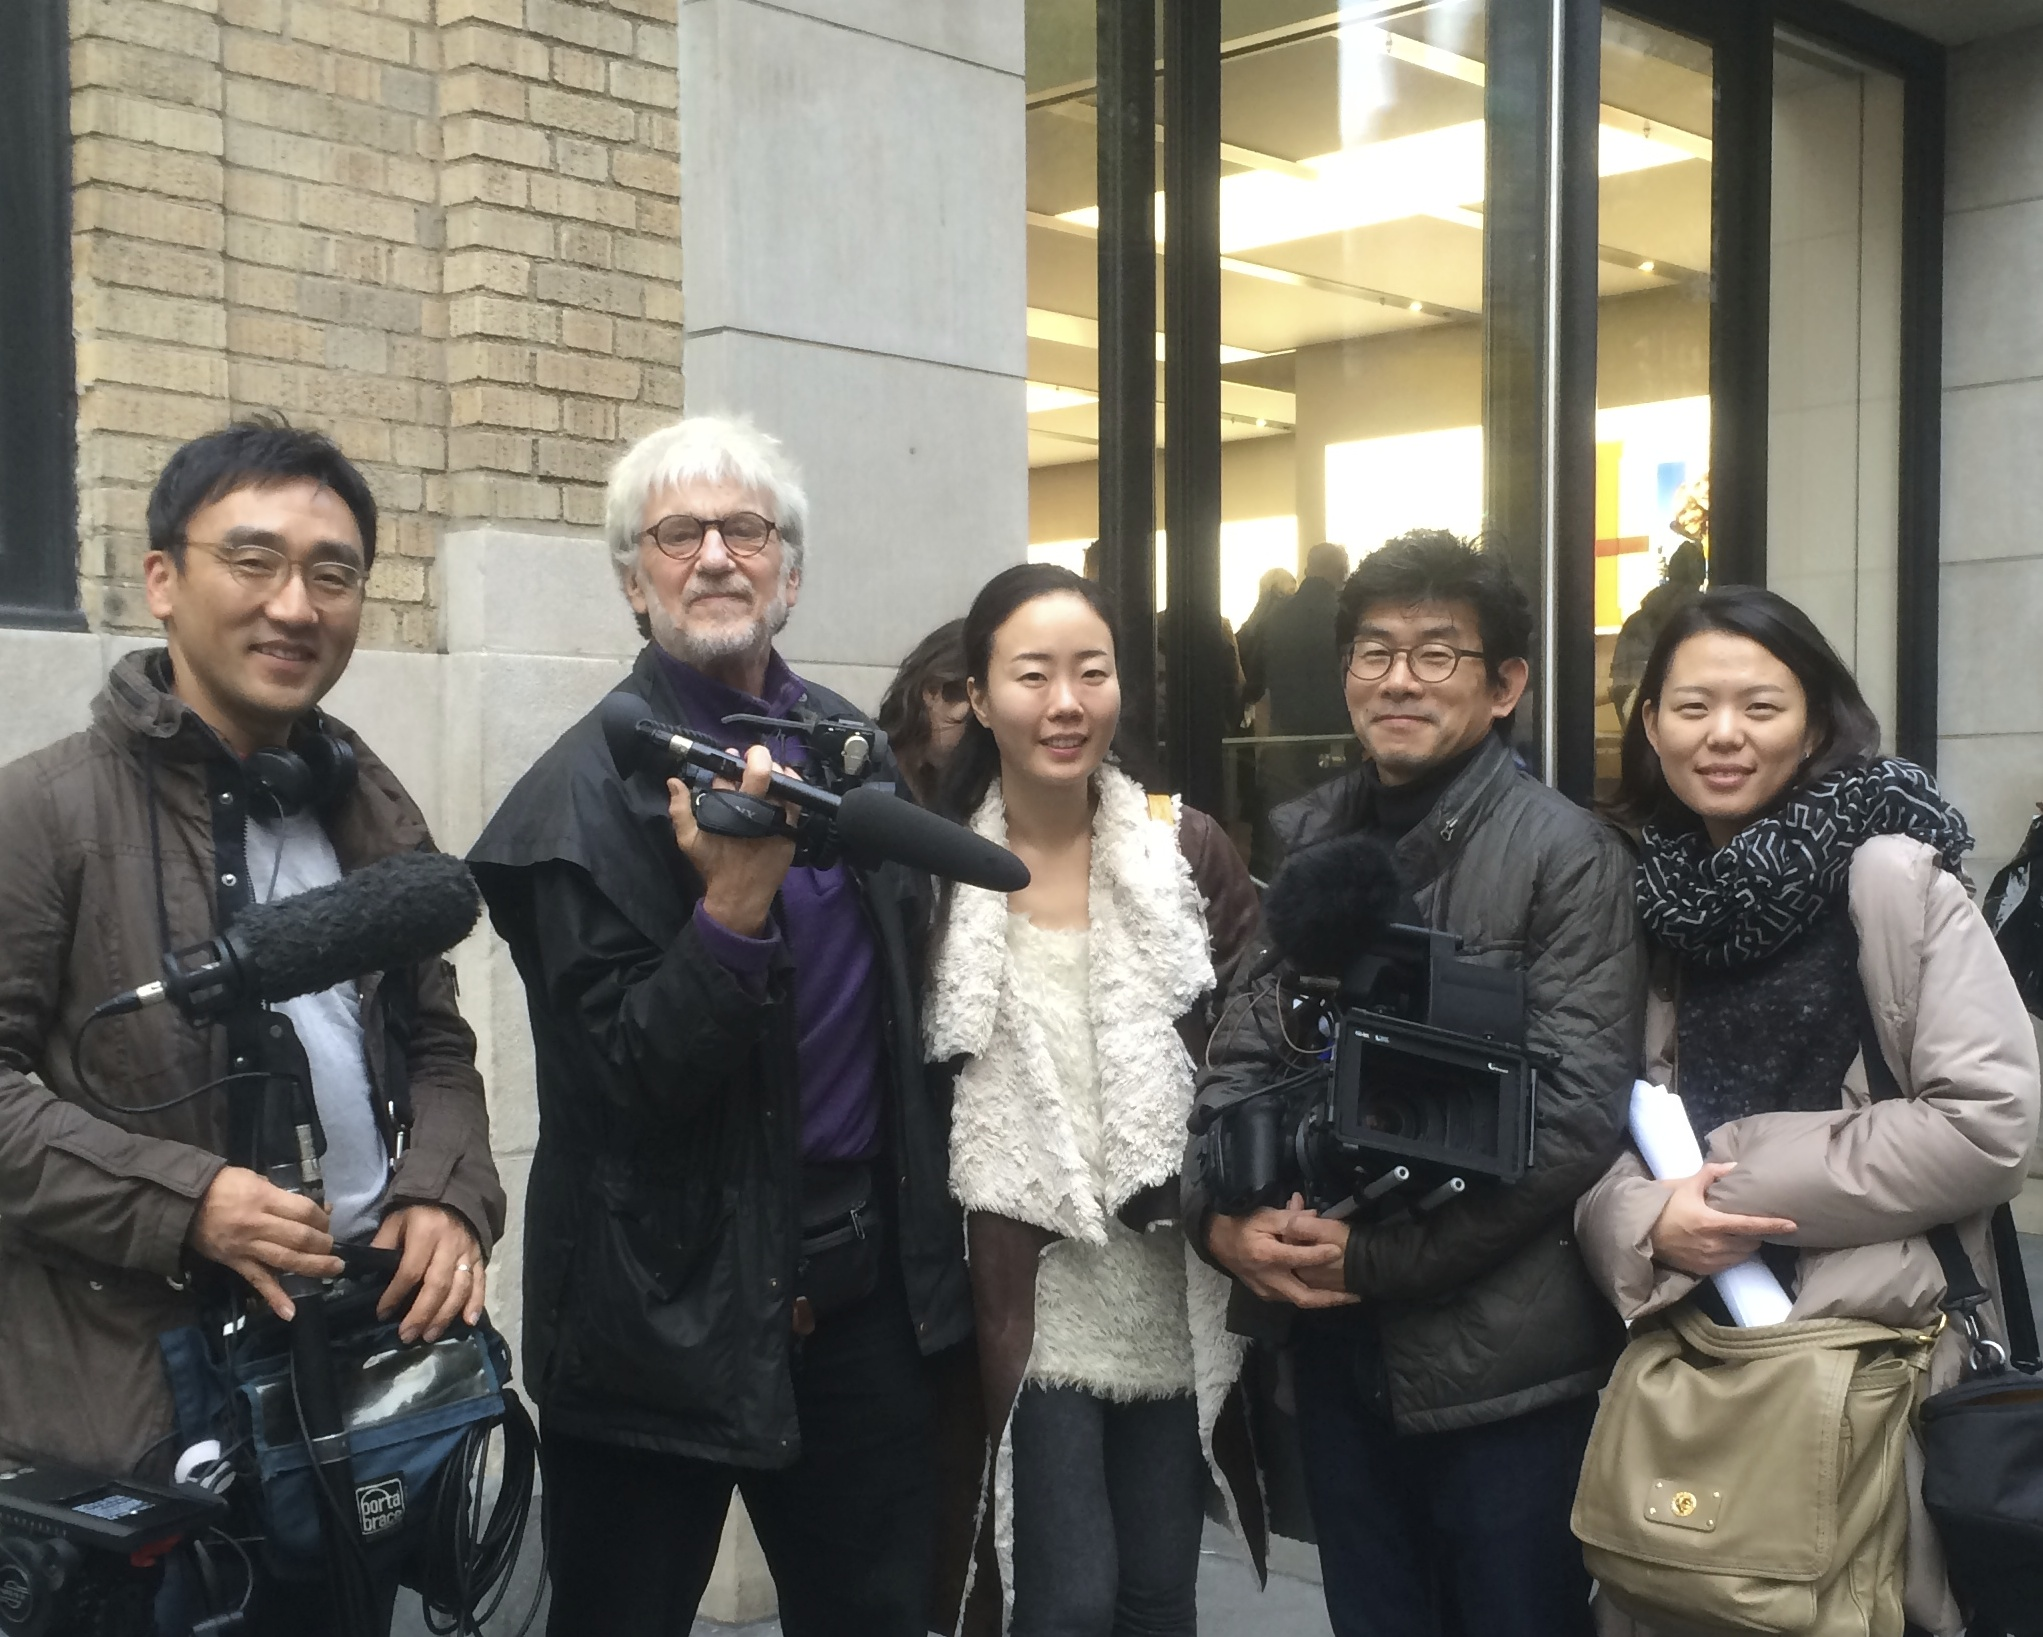 KBS Crew followed Skip Blumberg in SoHo for Documentary about Nam June Paik